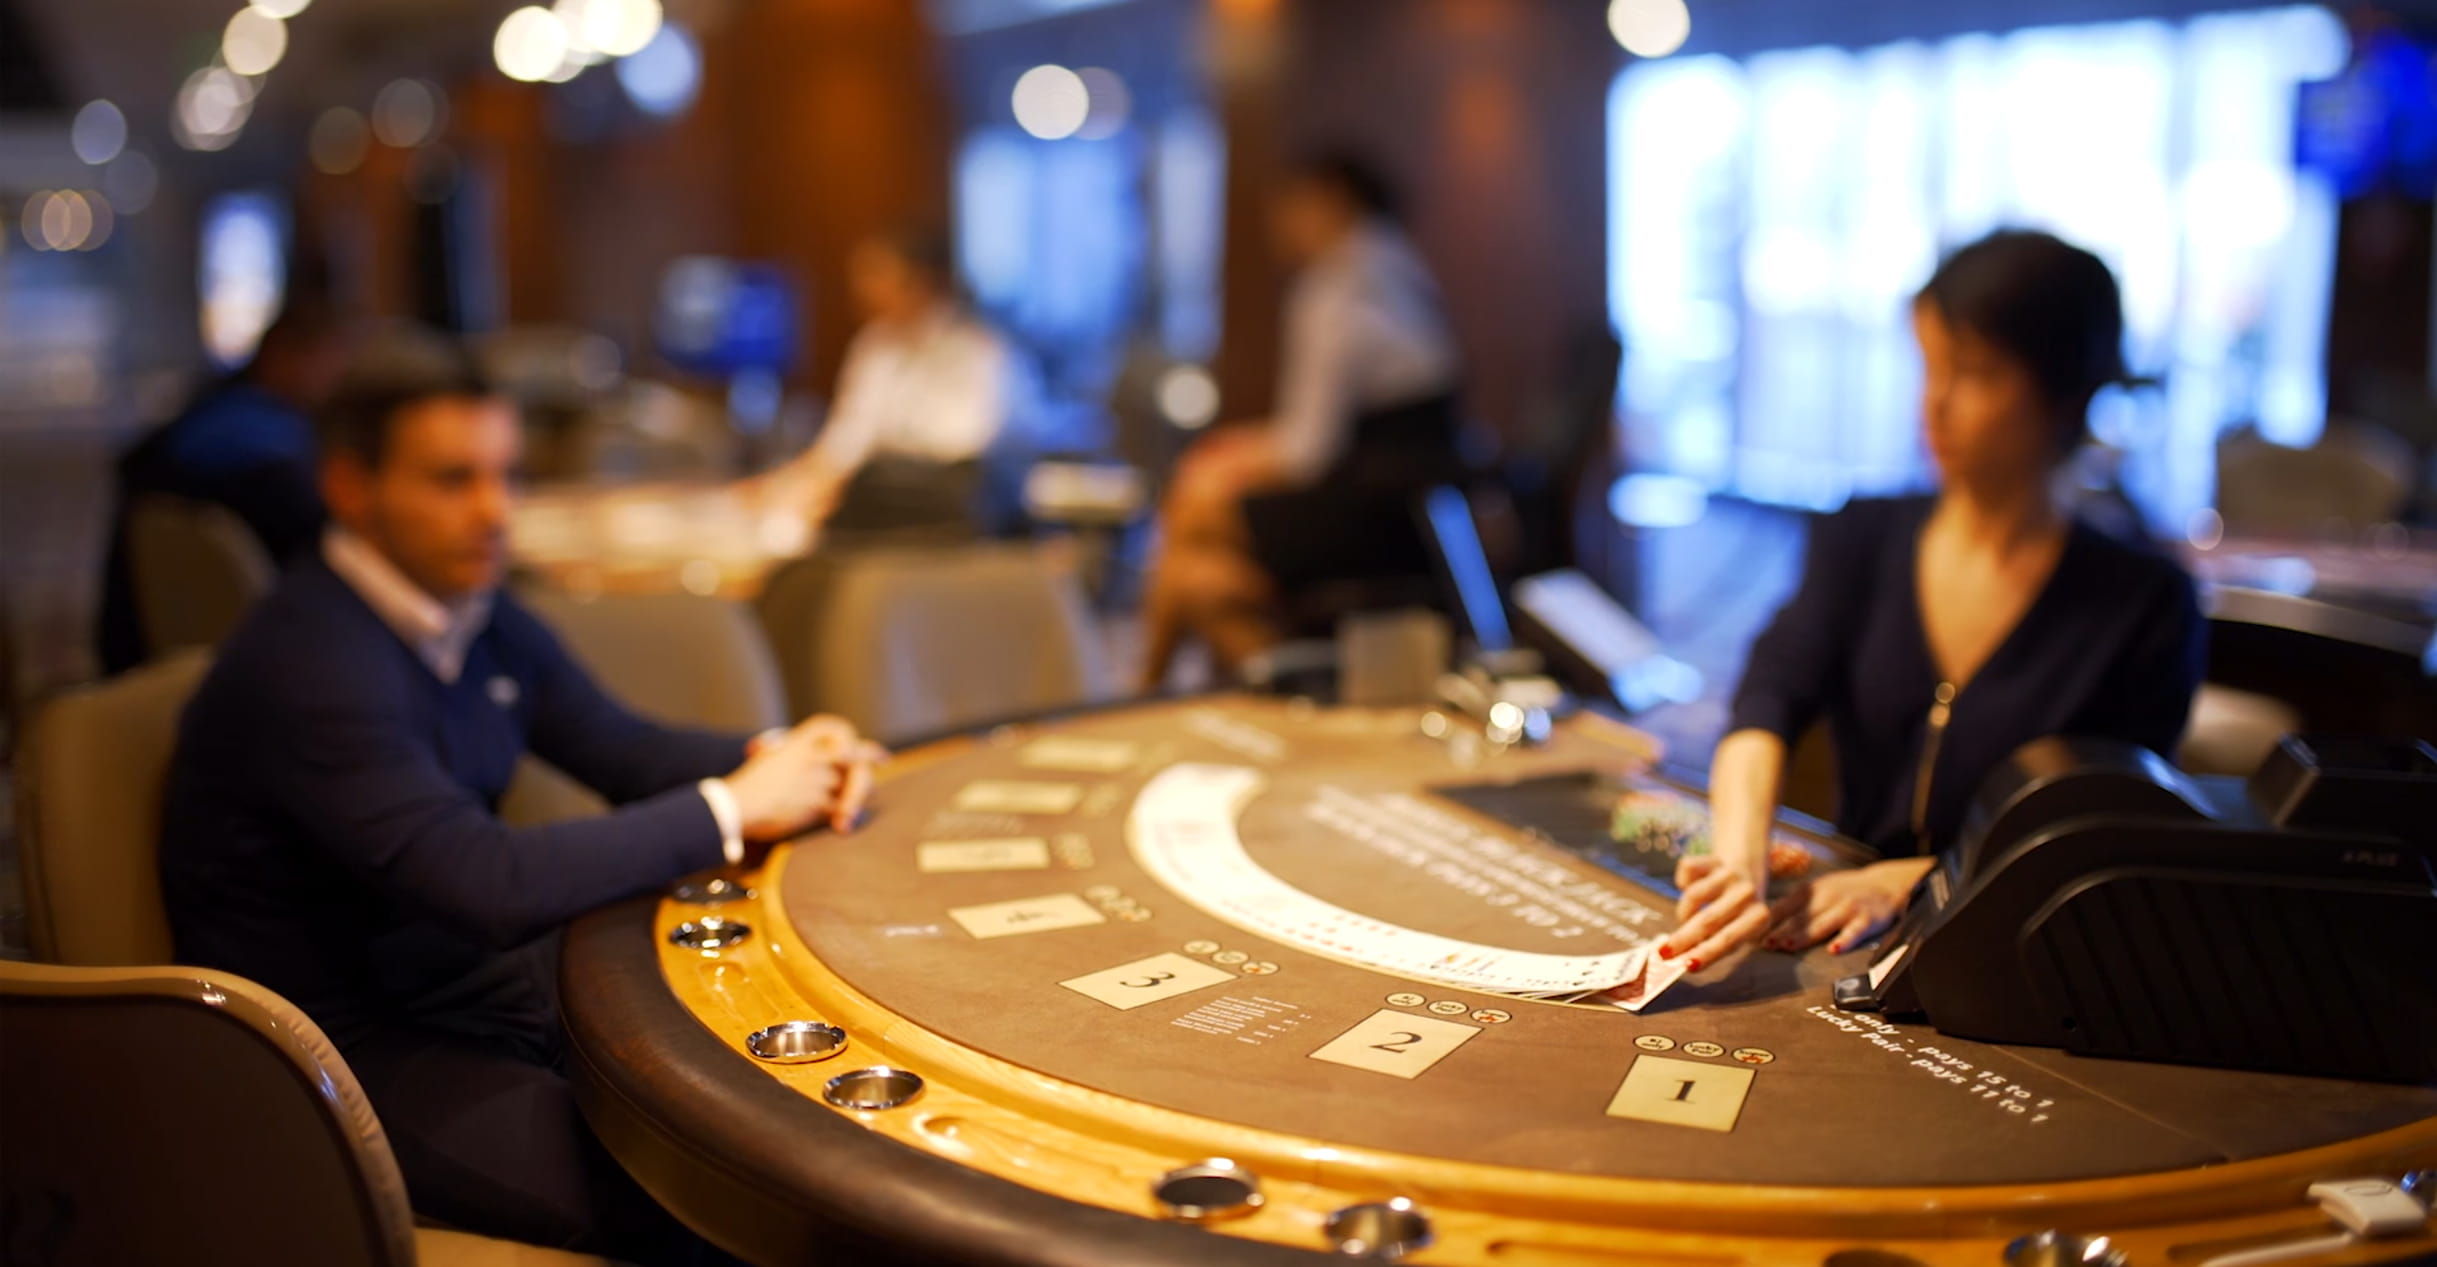 How To Win AtvideoPoker - Tips To BeatvideoPoker Games